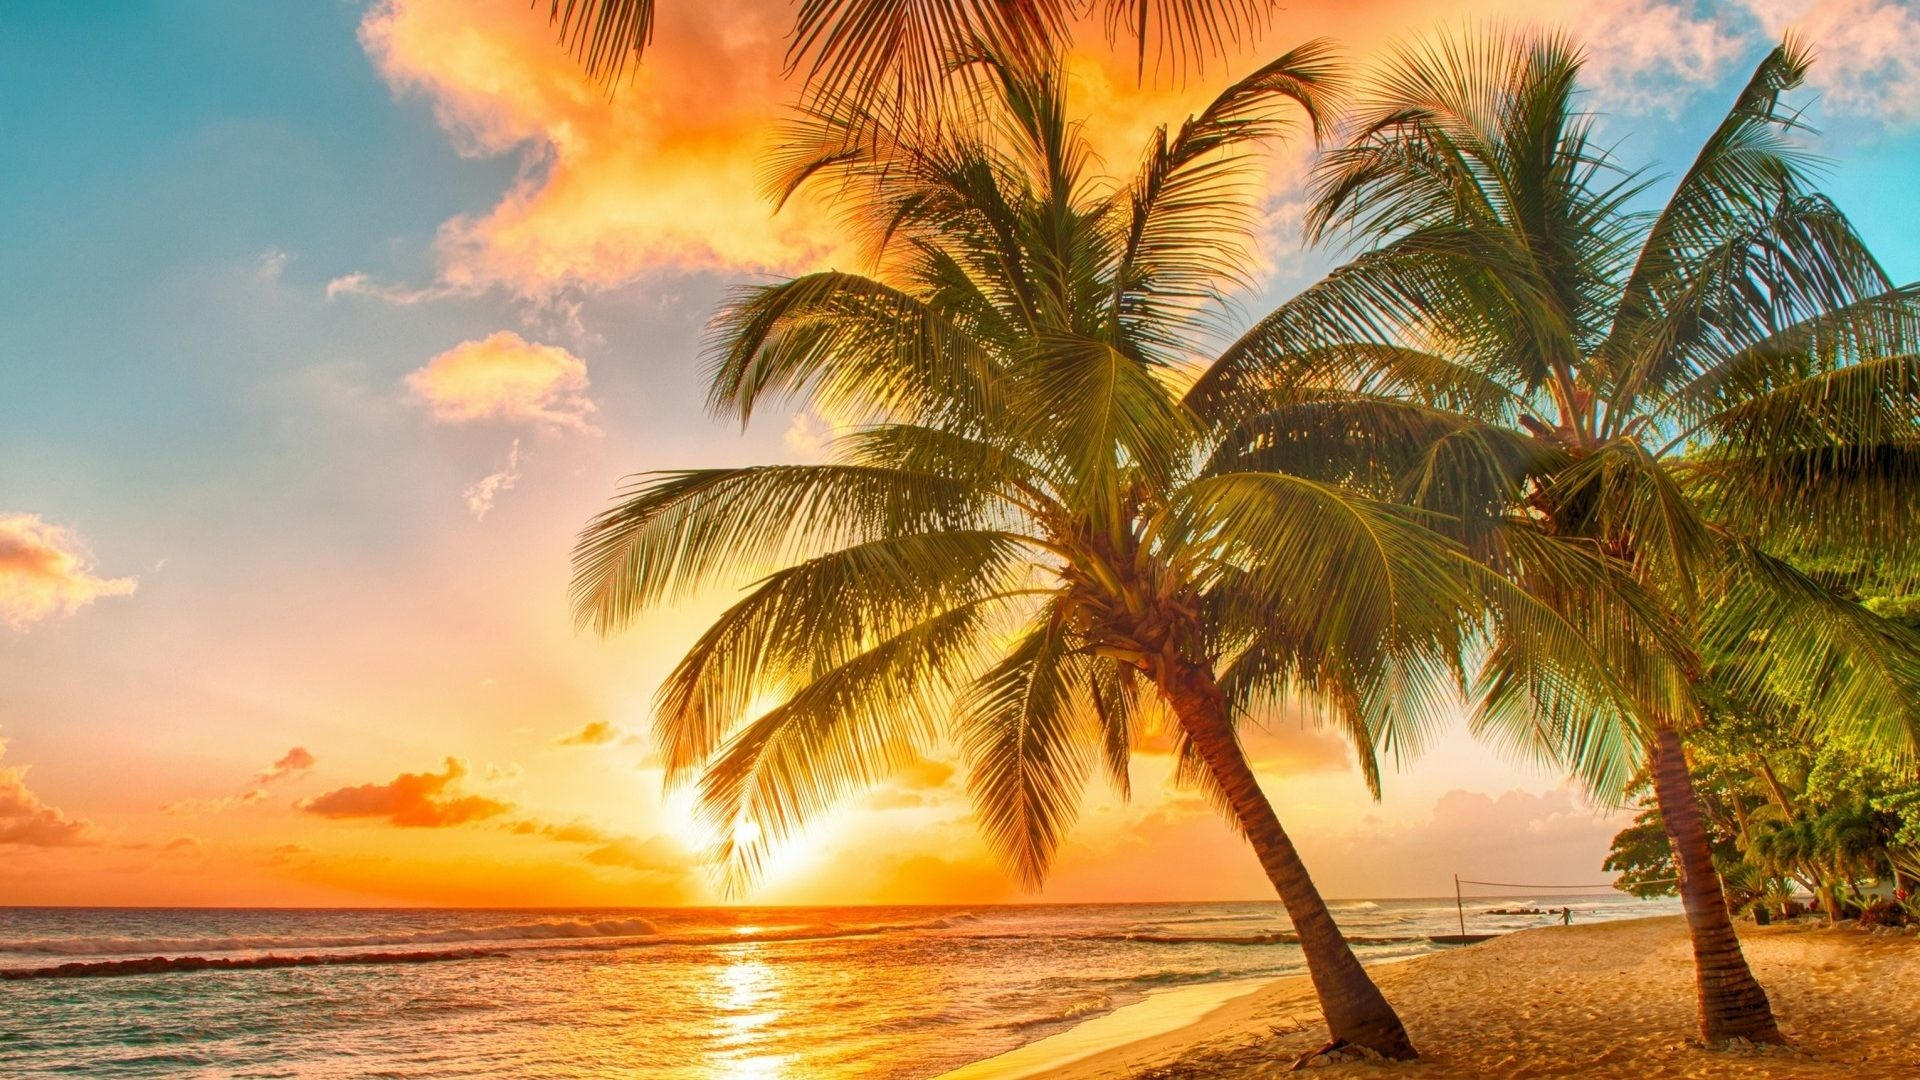 Paradise Beach Wallpaper 69 Pictures